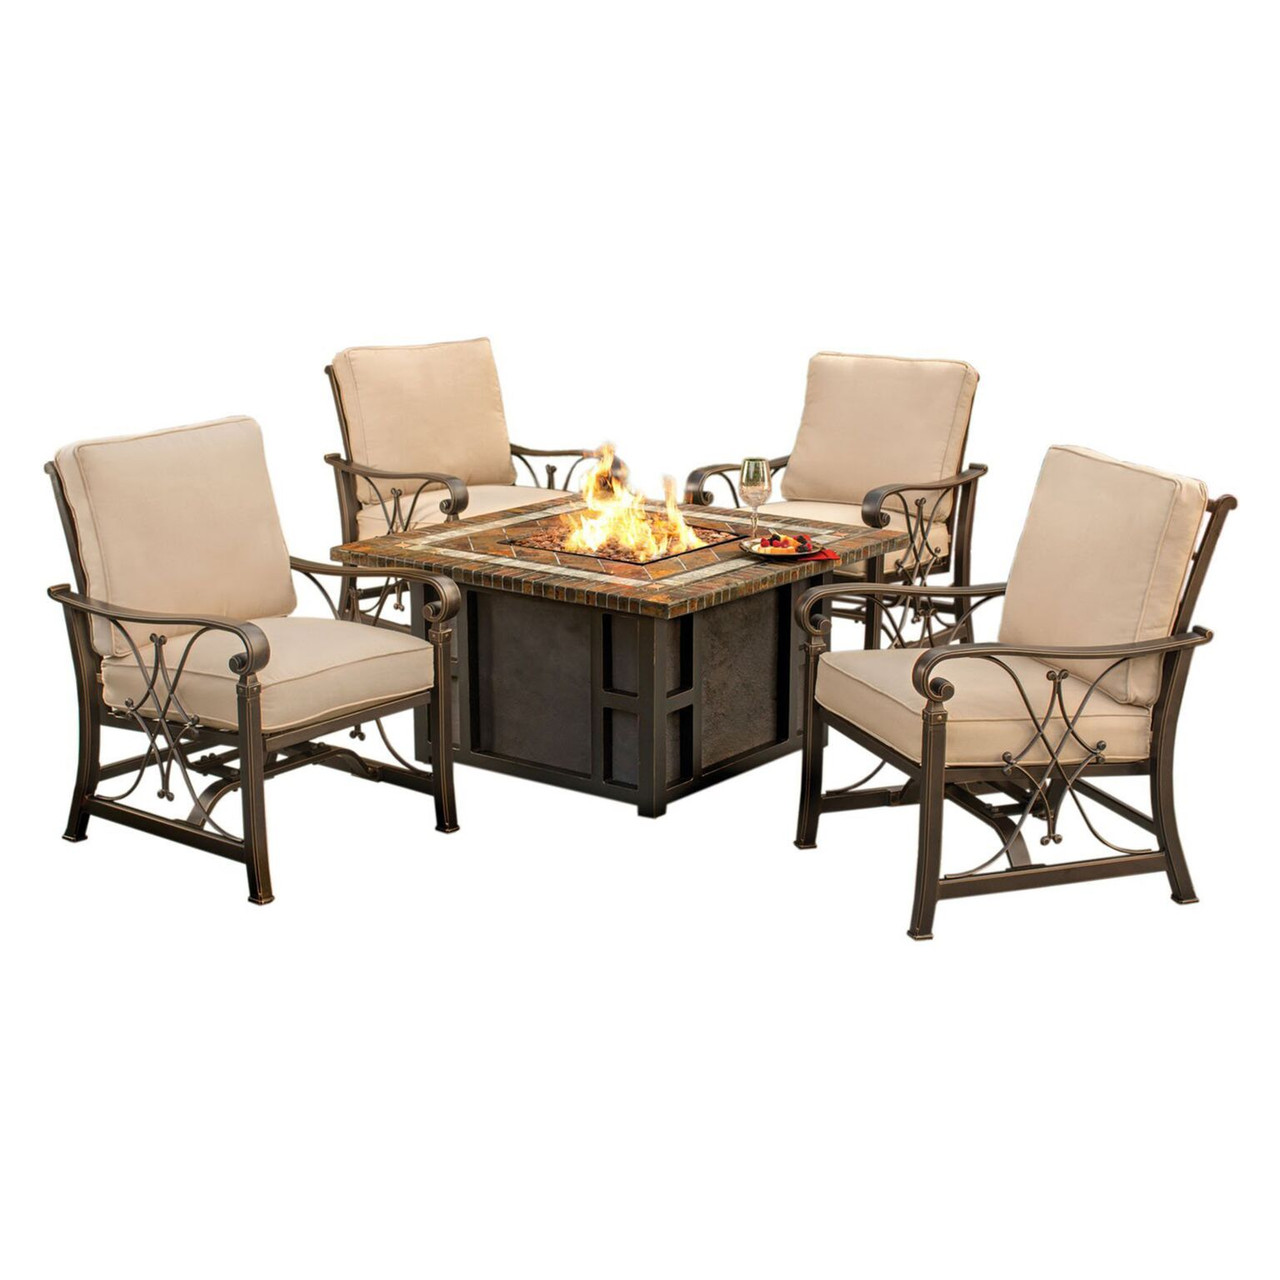 7 Piece Goldie Slate Gas Fire Pit Aluminum Rocking Chair Outdoor Patio Chat  Set   32735218